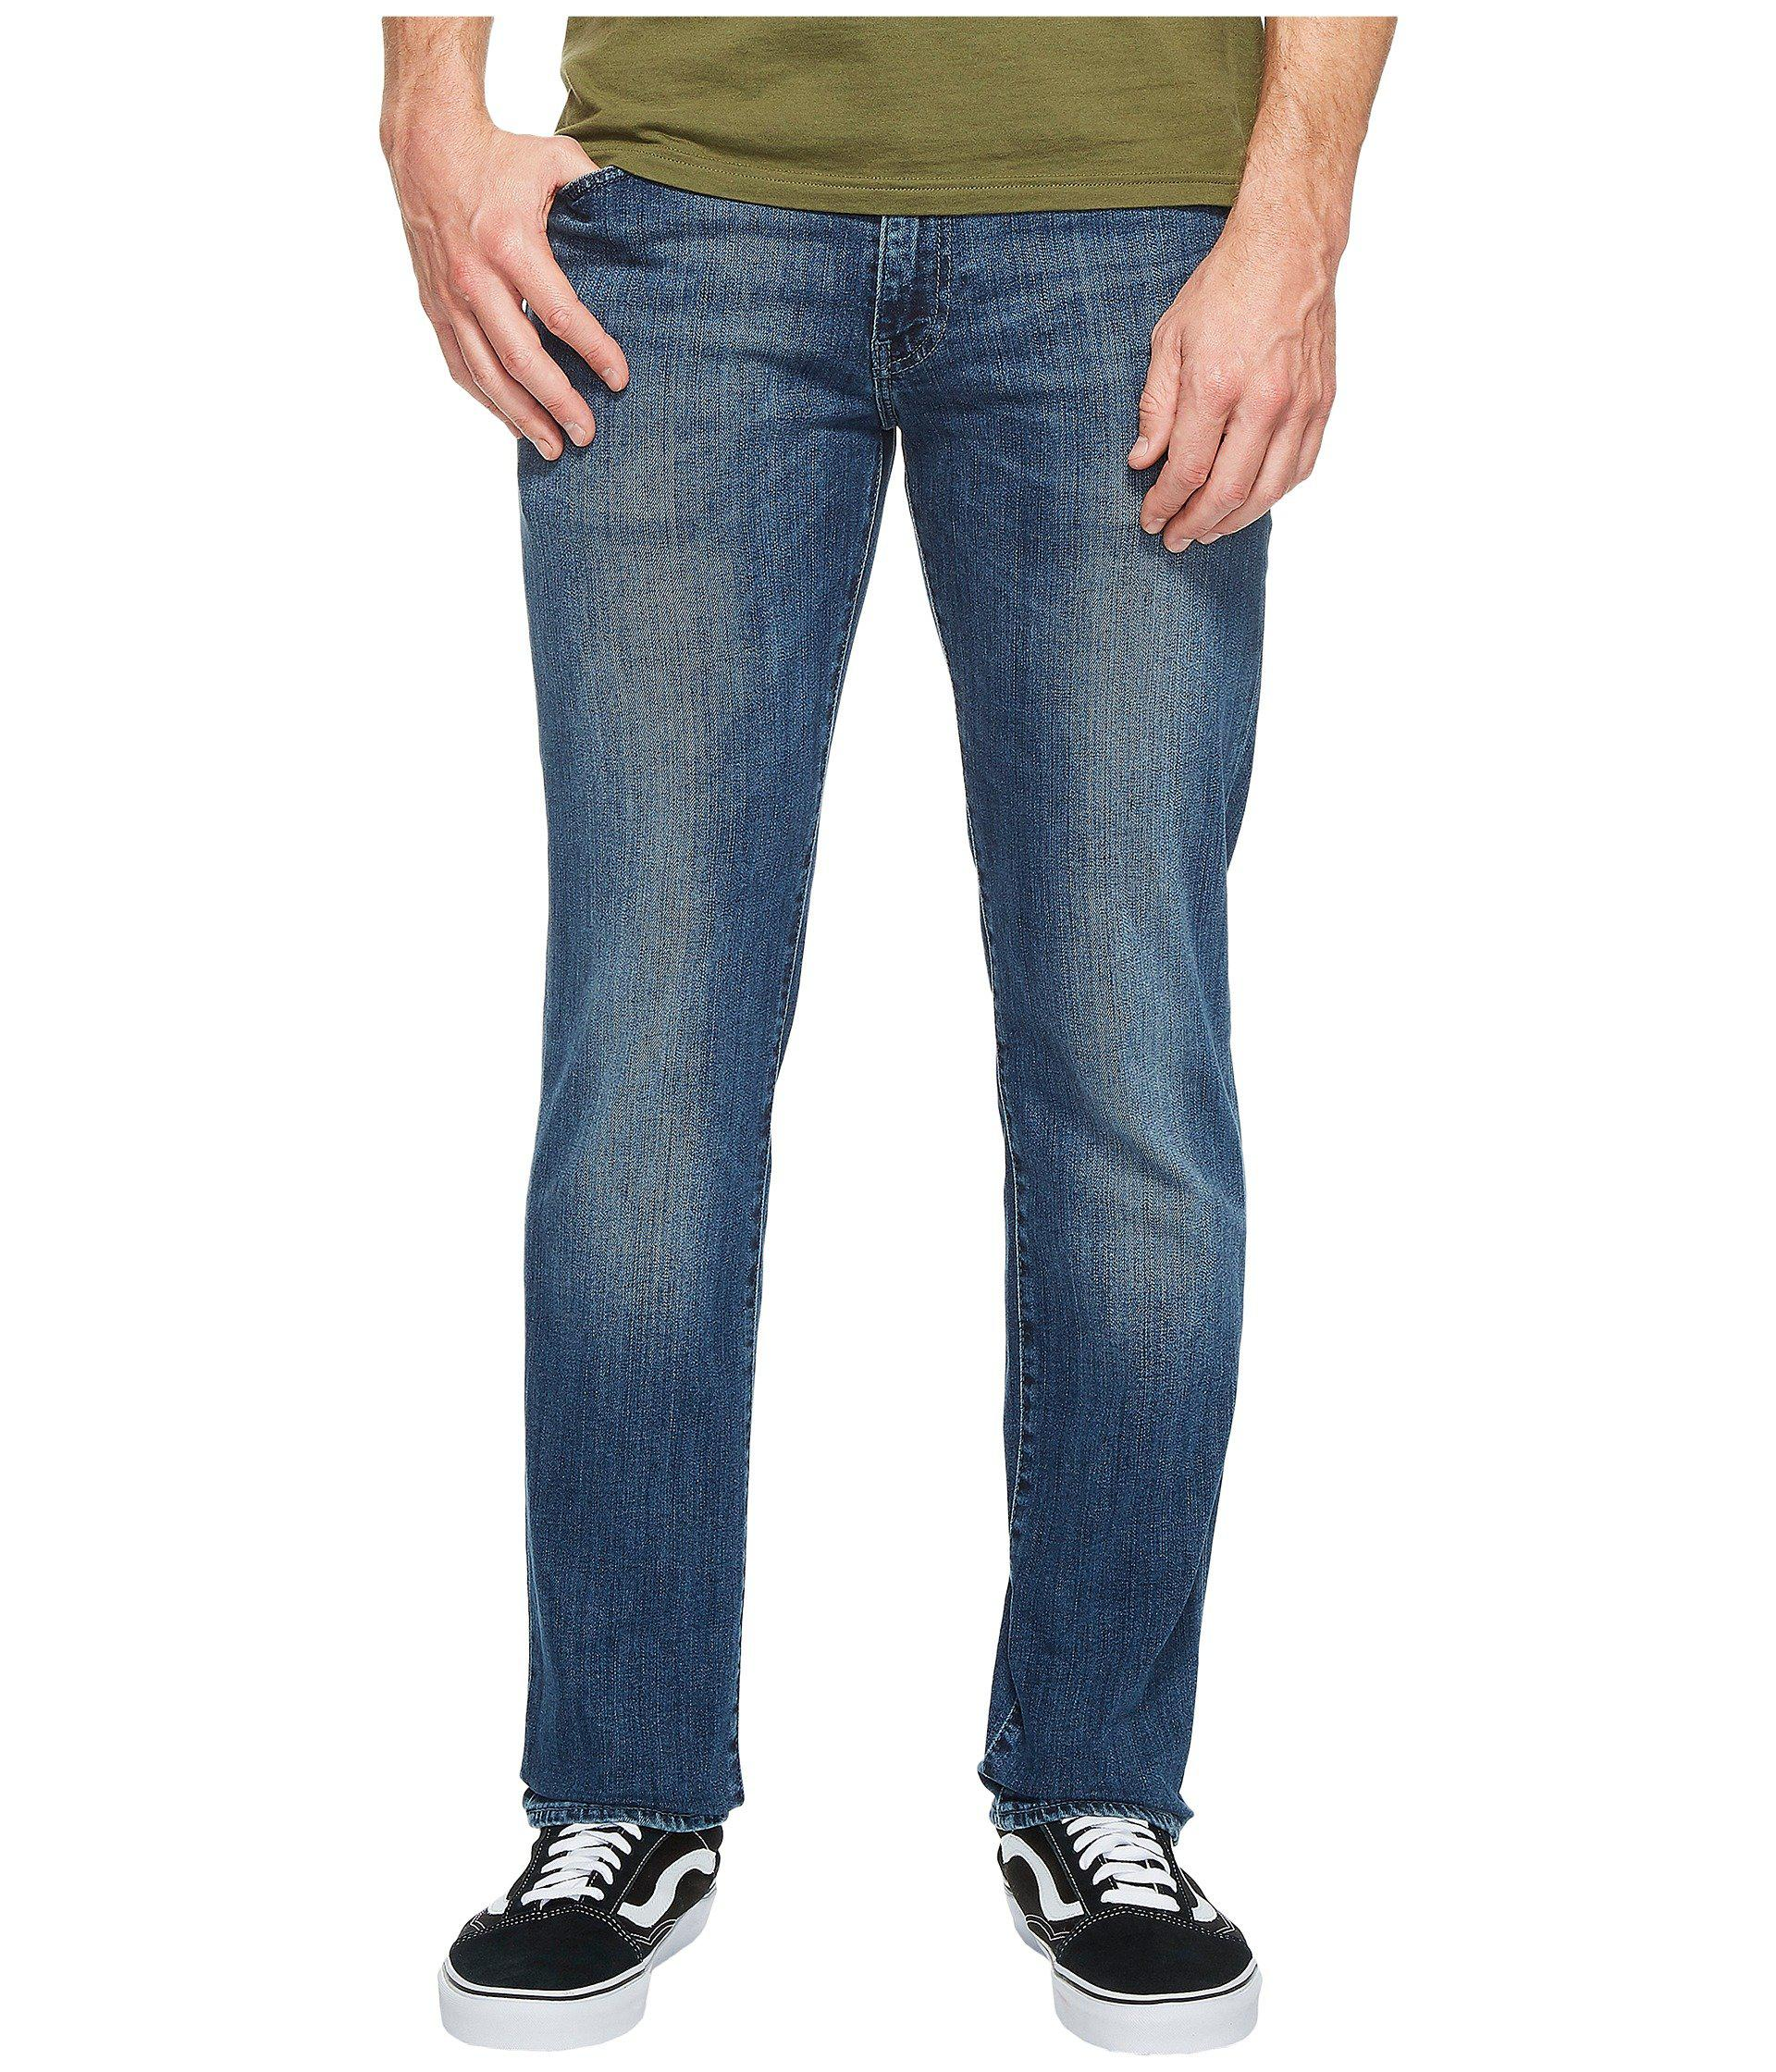 51f703726b2 Lyst - Levi's Levi's(r) Mens 511tm Slim (black) Men's Jeans in Blue ...